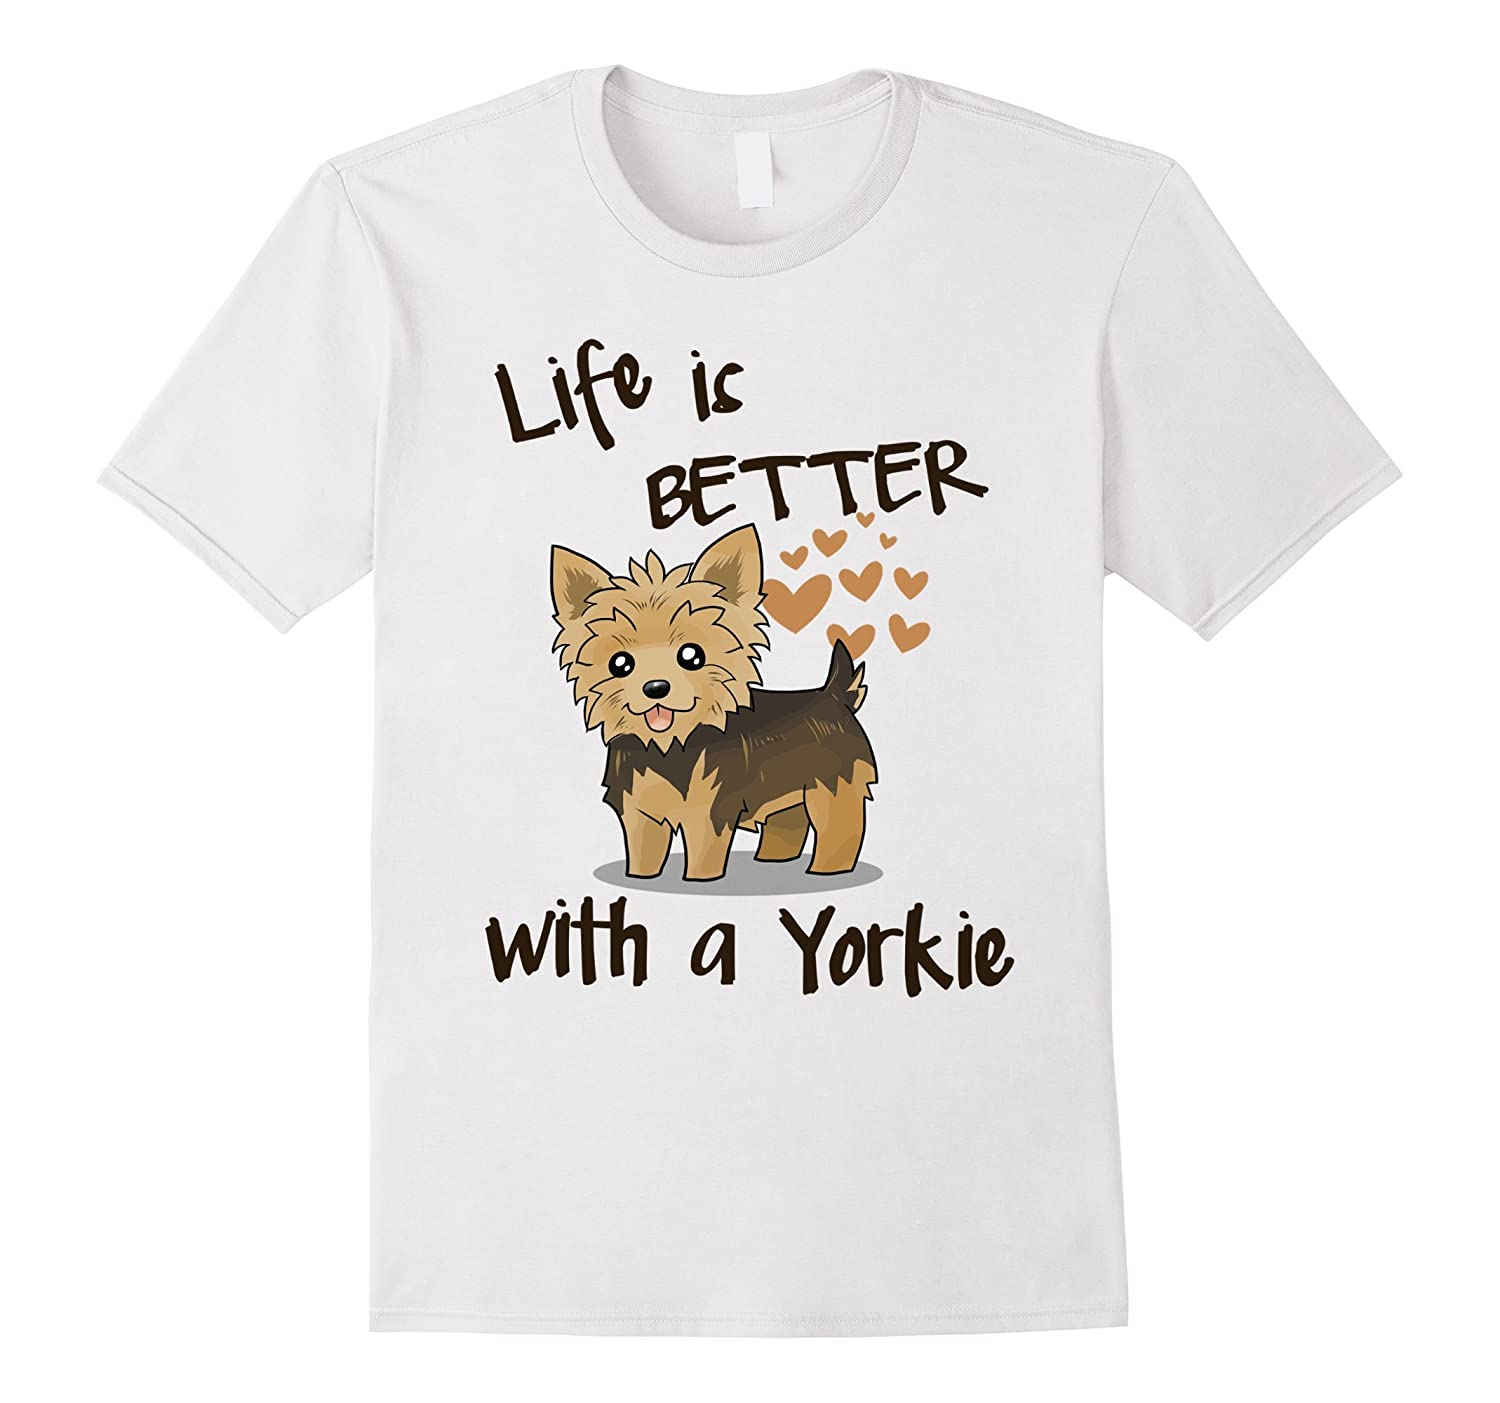 437681f3 Yorkie T-shirt , Lifes better with a Yorkie-CL – Colamaga